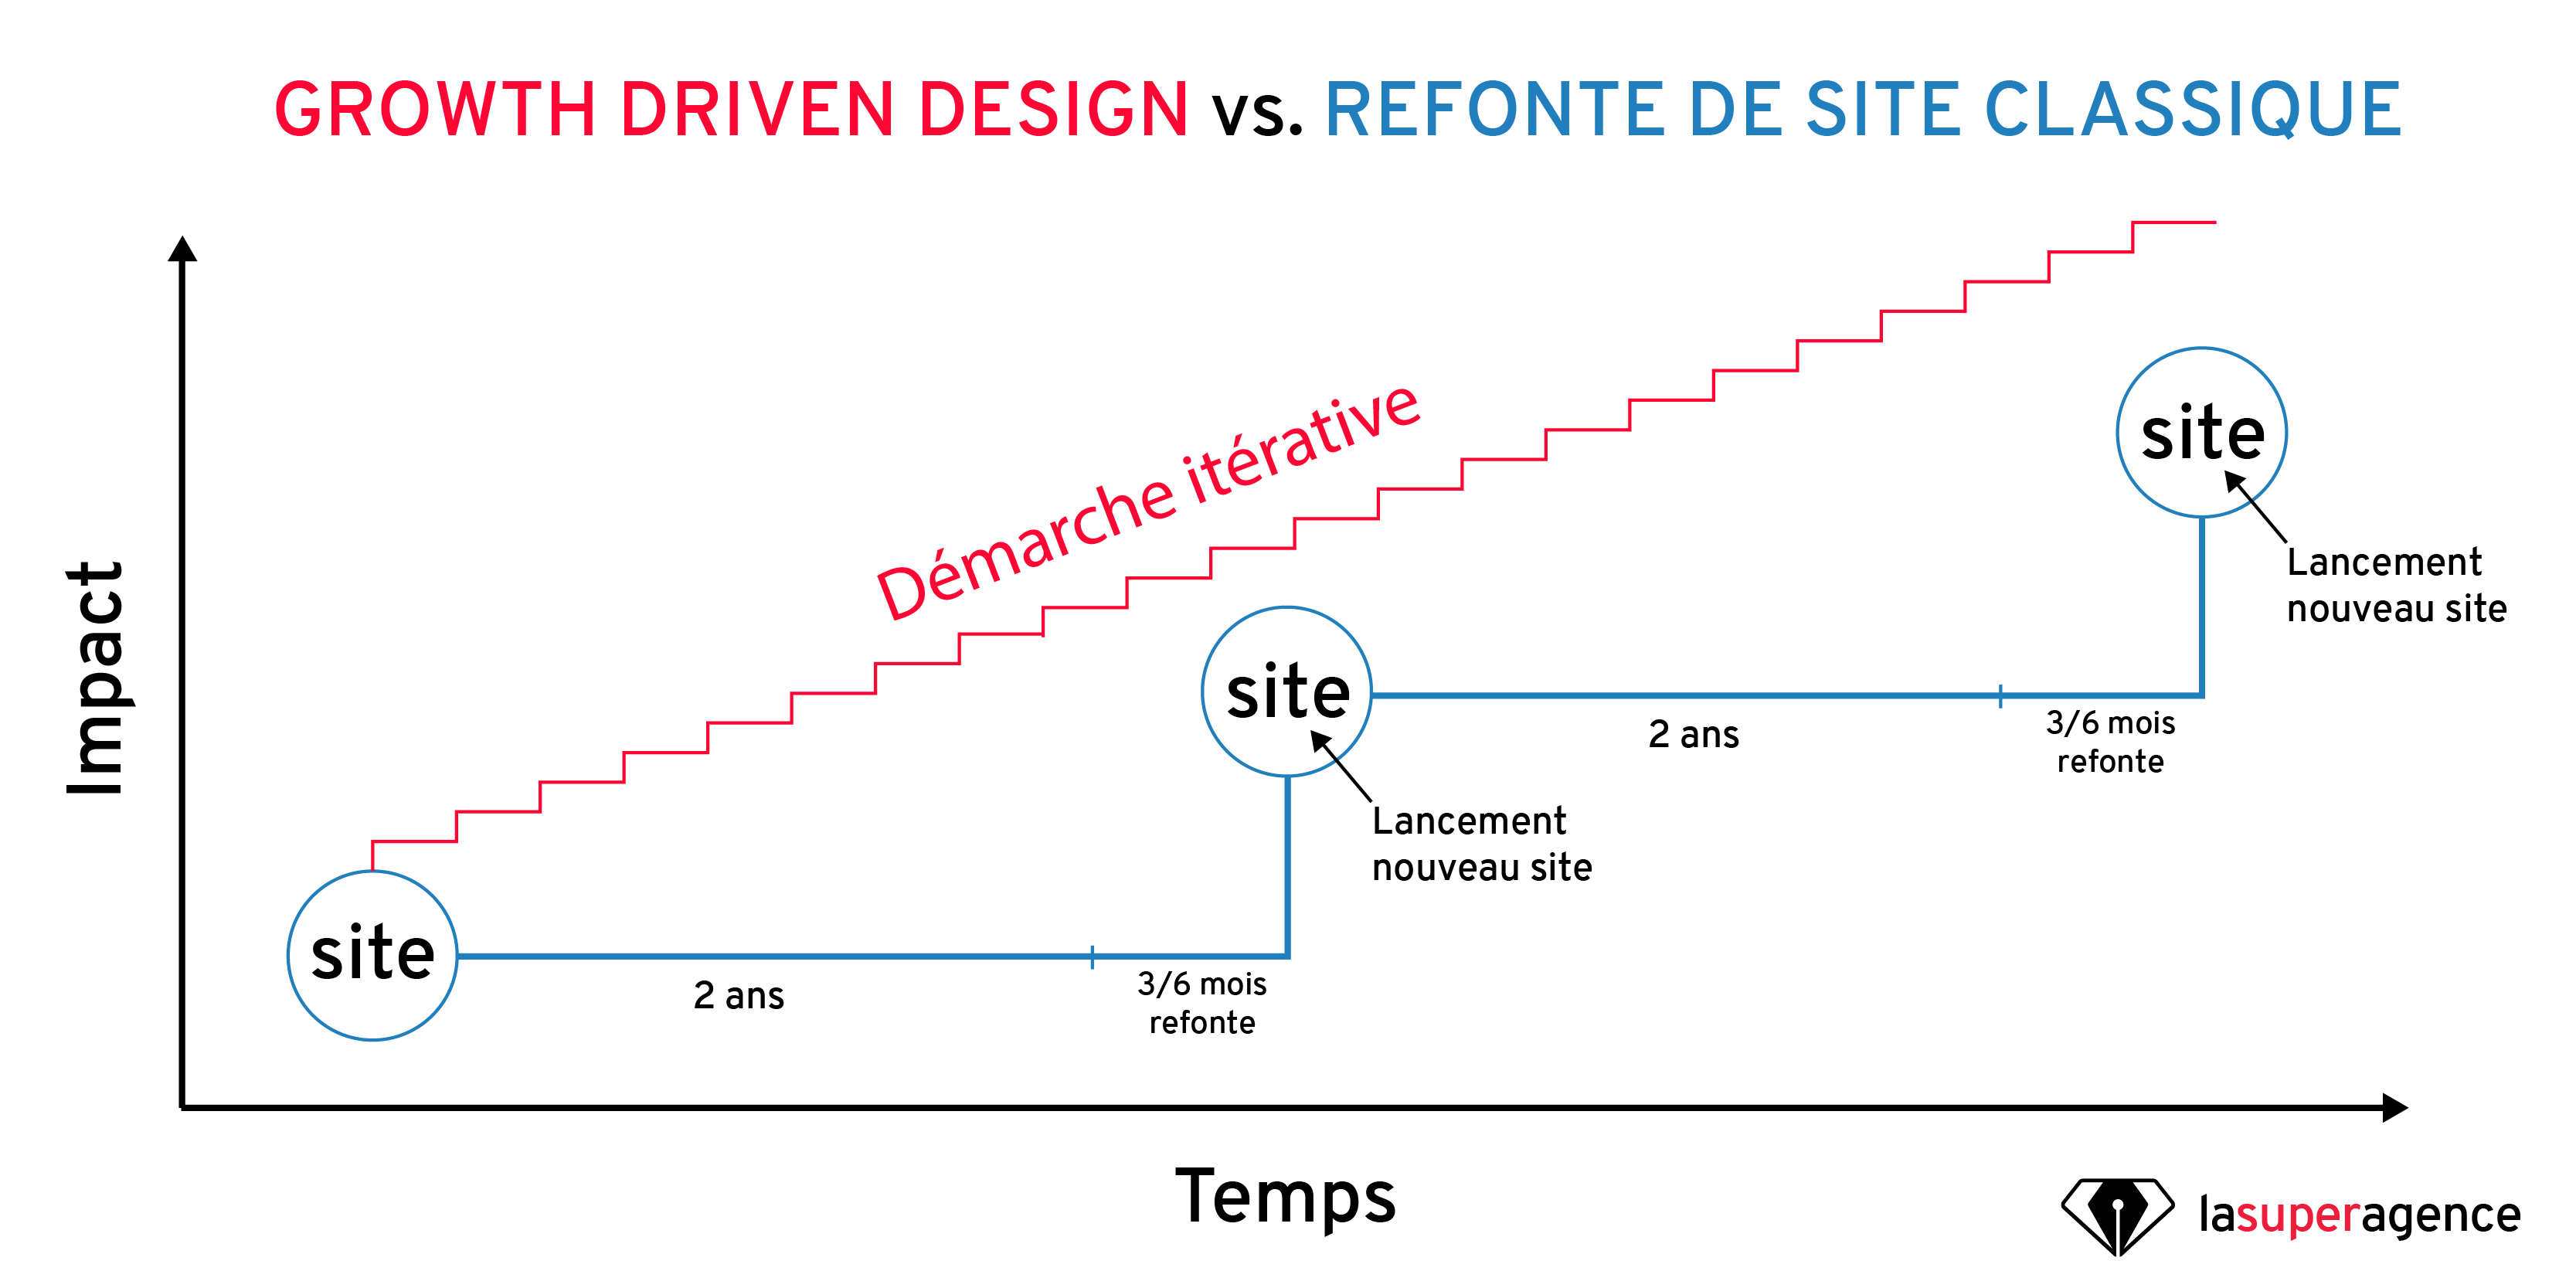 Growth Driven Design vs refonte de site classique